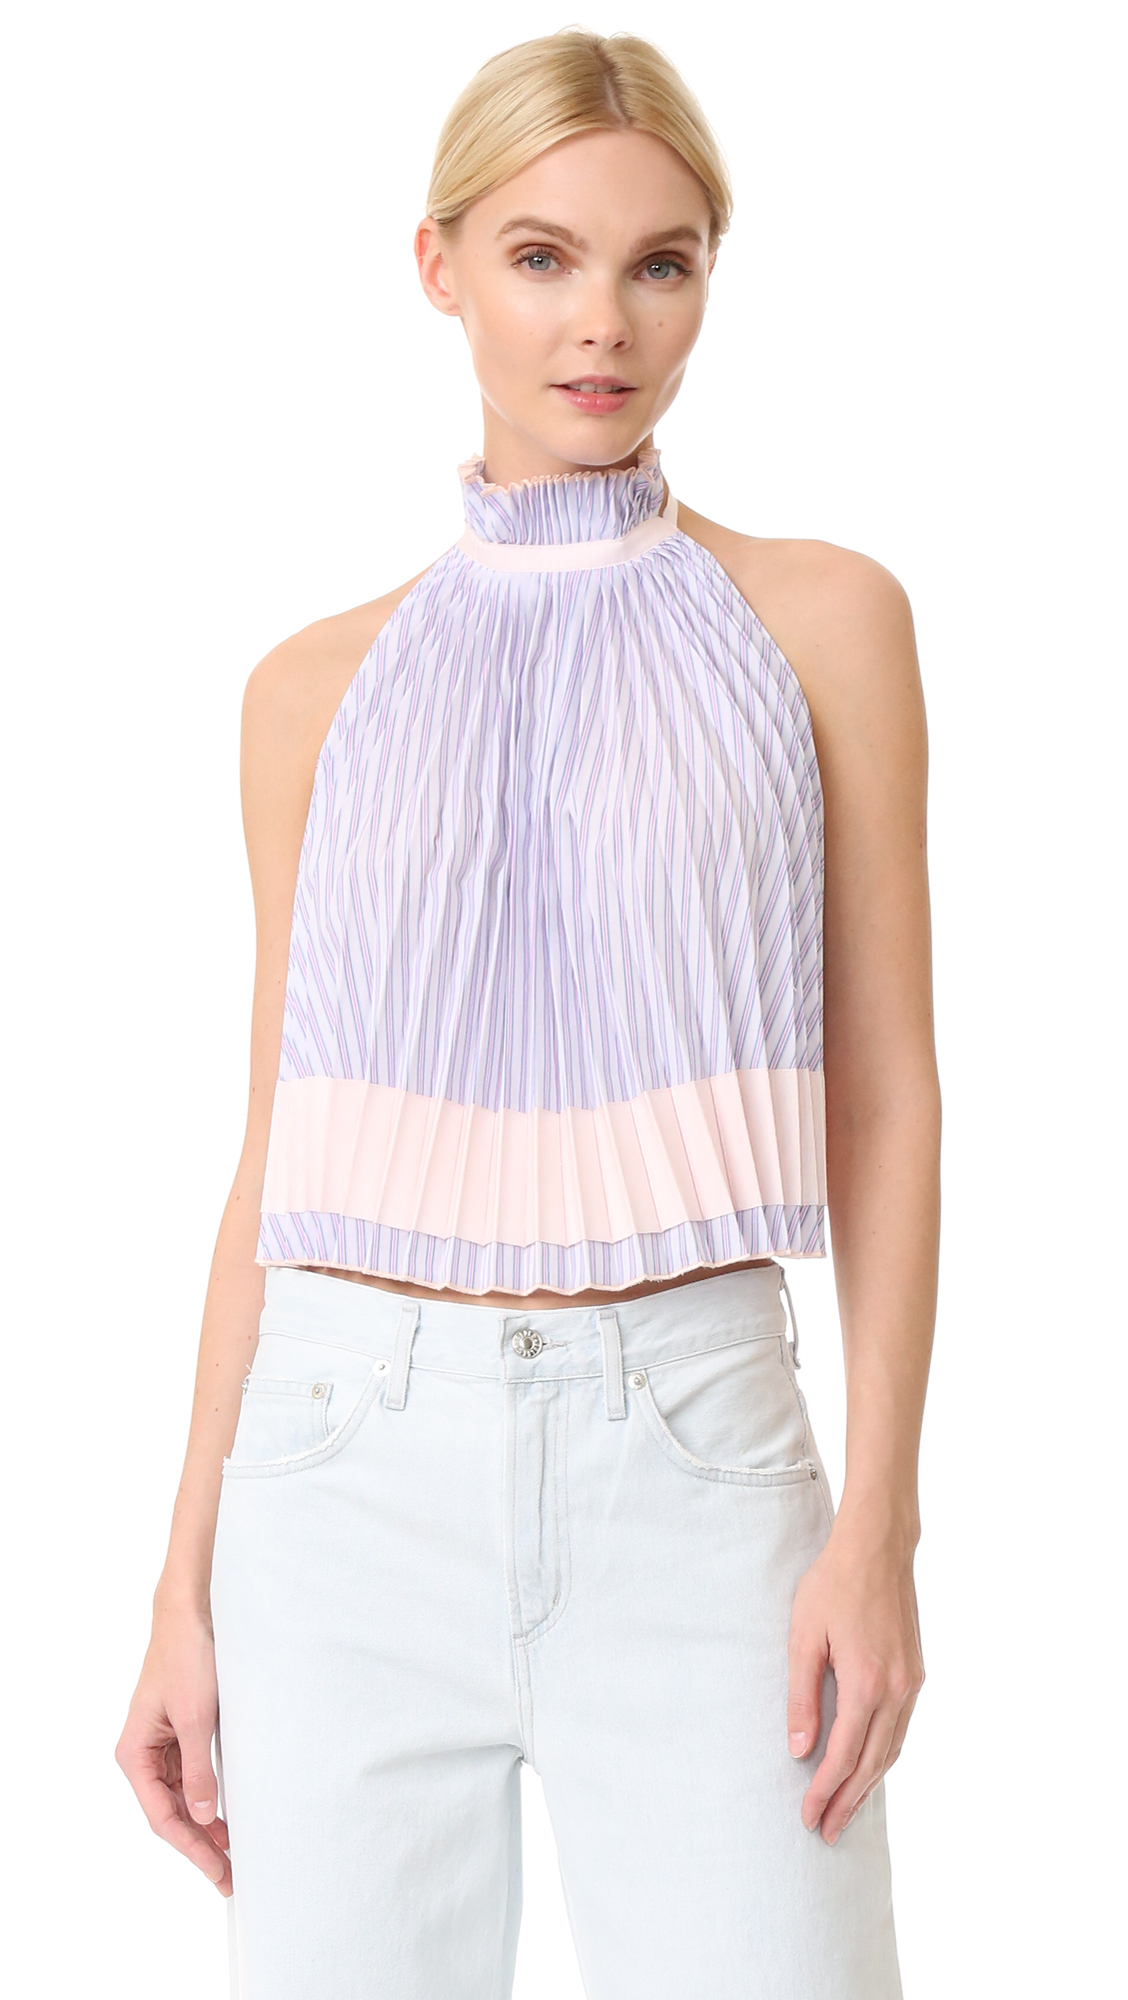 Adam Selman Backless Pleated Trapeze Top - Blush Stripe